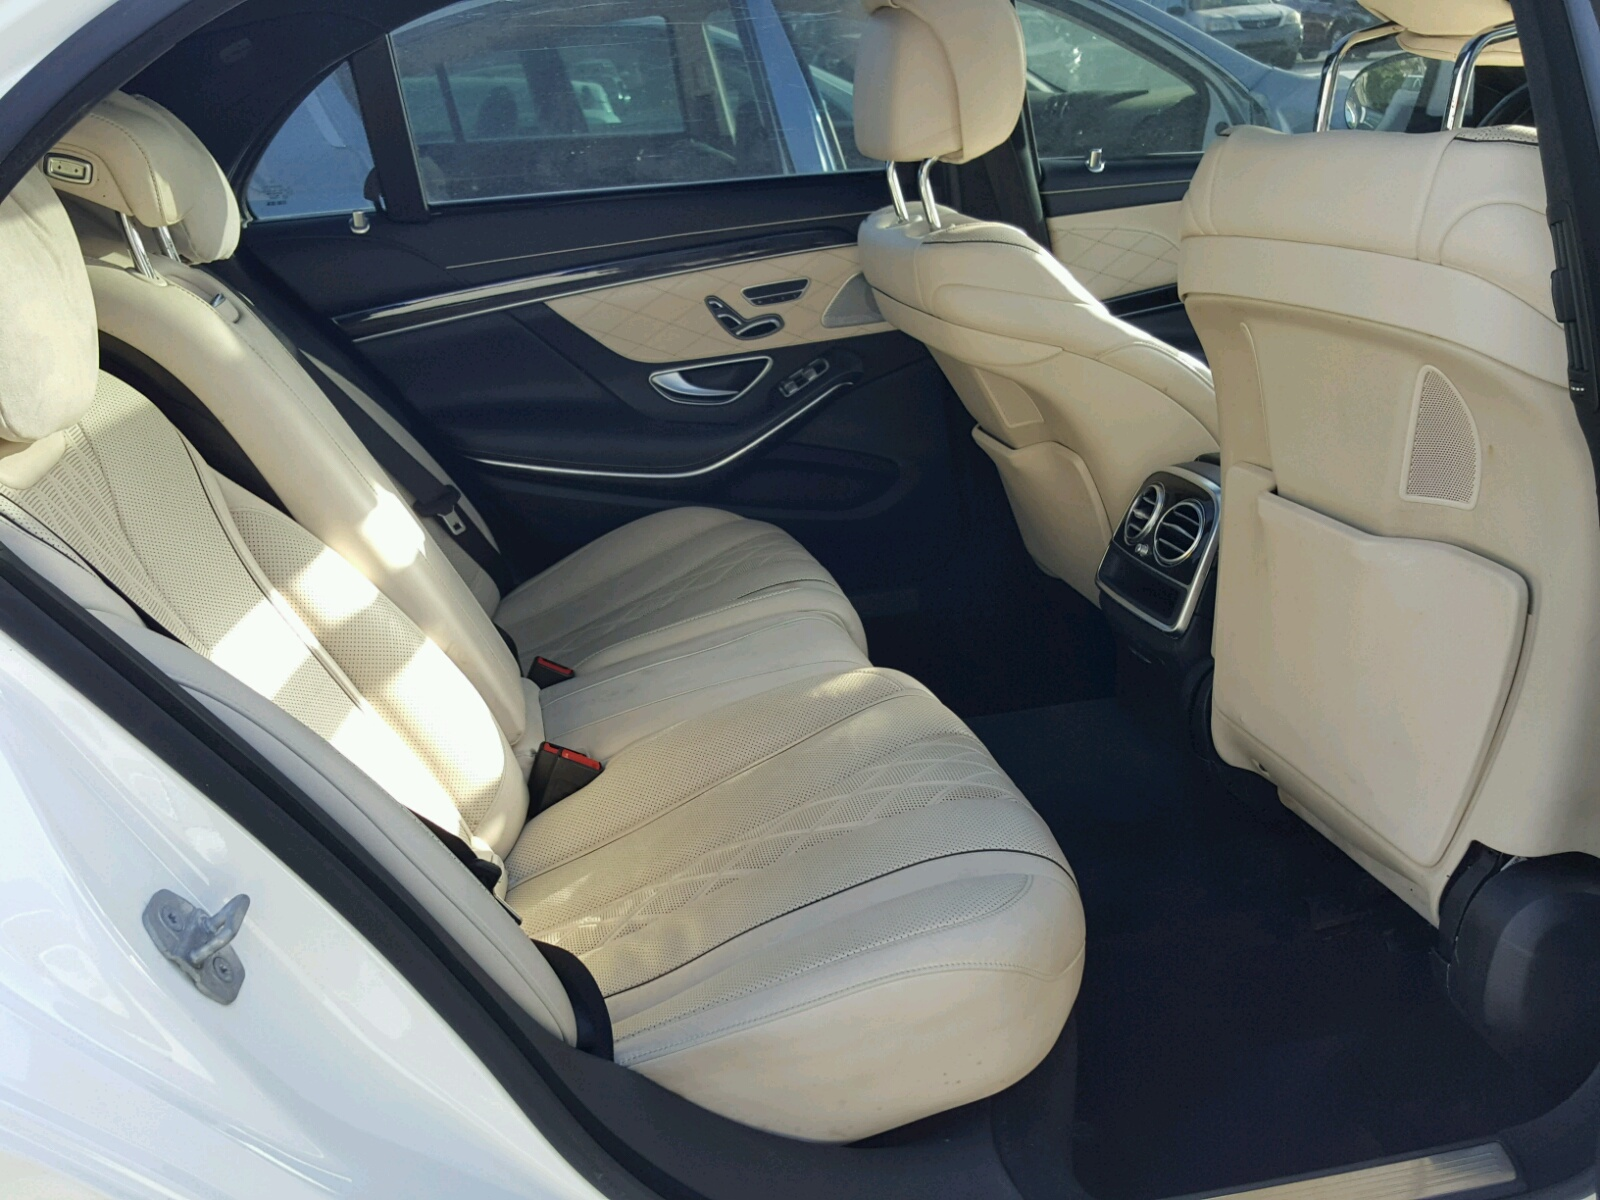 2014 mercedes benz s 550 for sale at copart miami fl lot for Mercedes benz junk yards miami